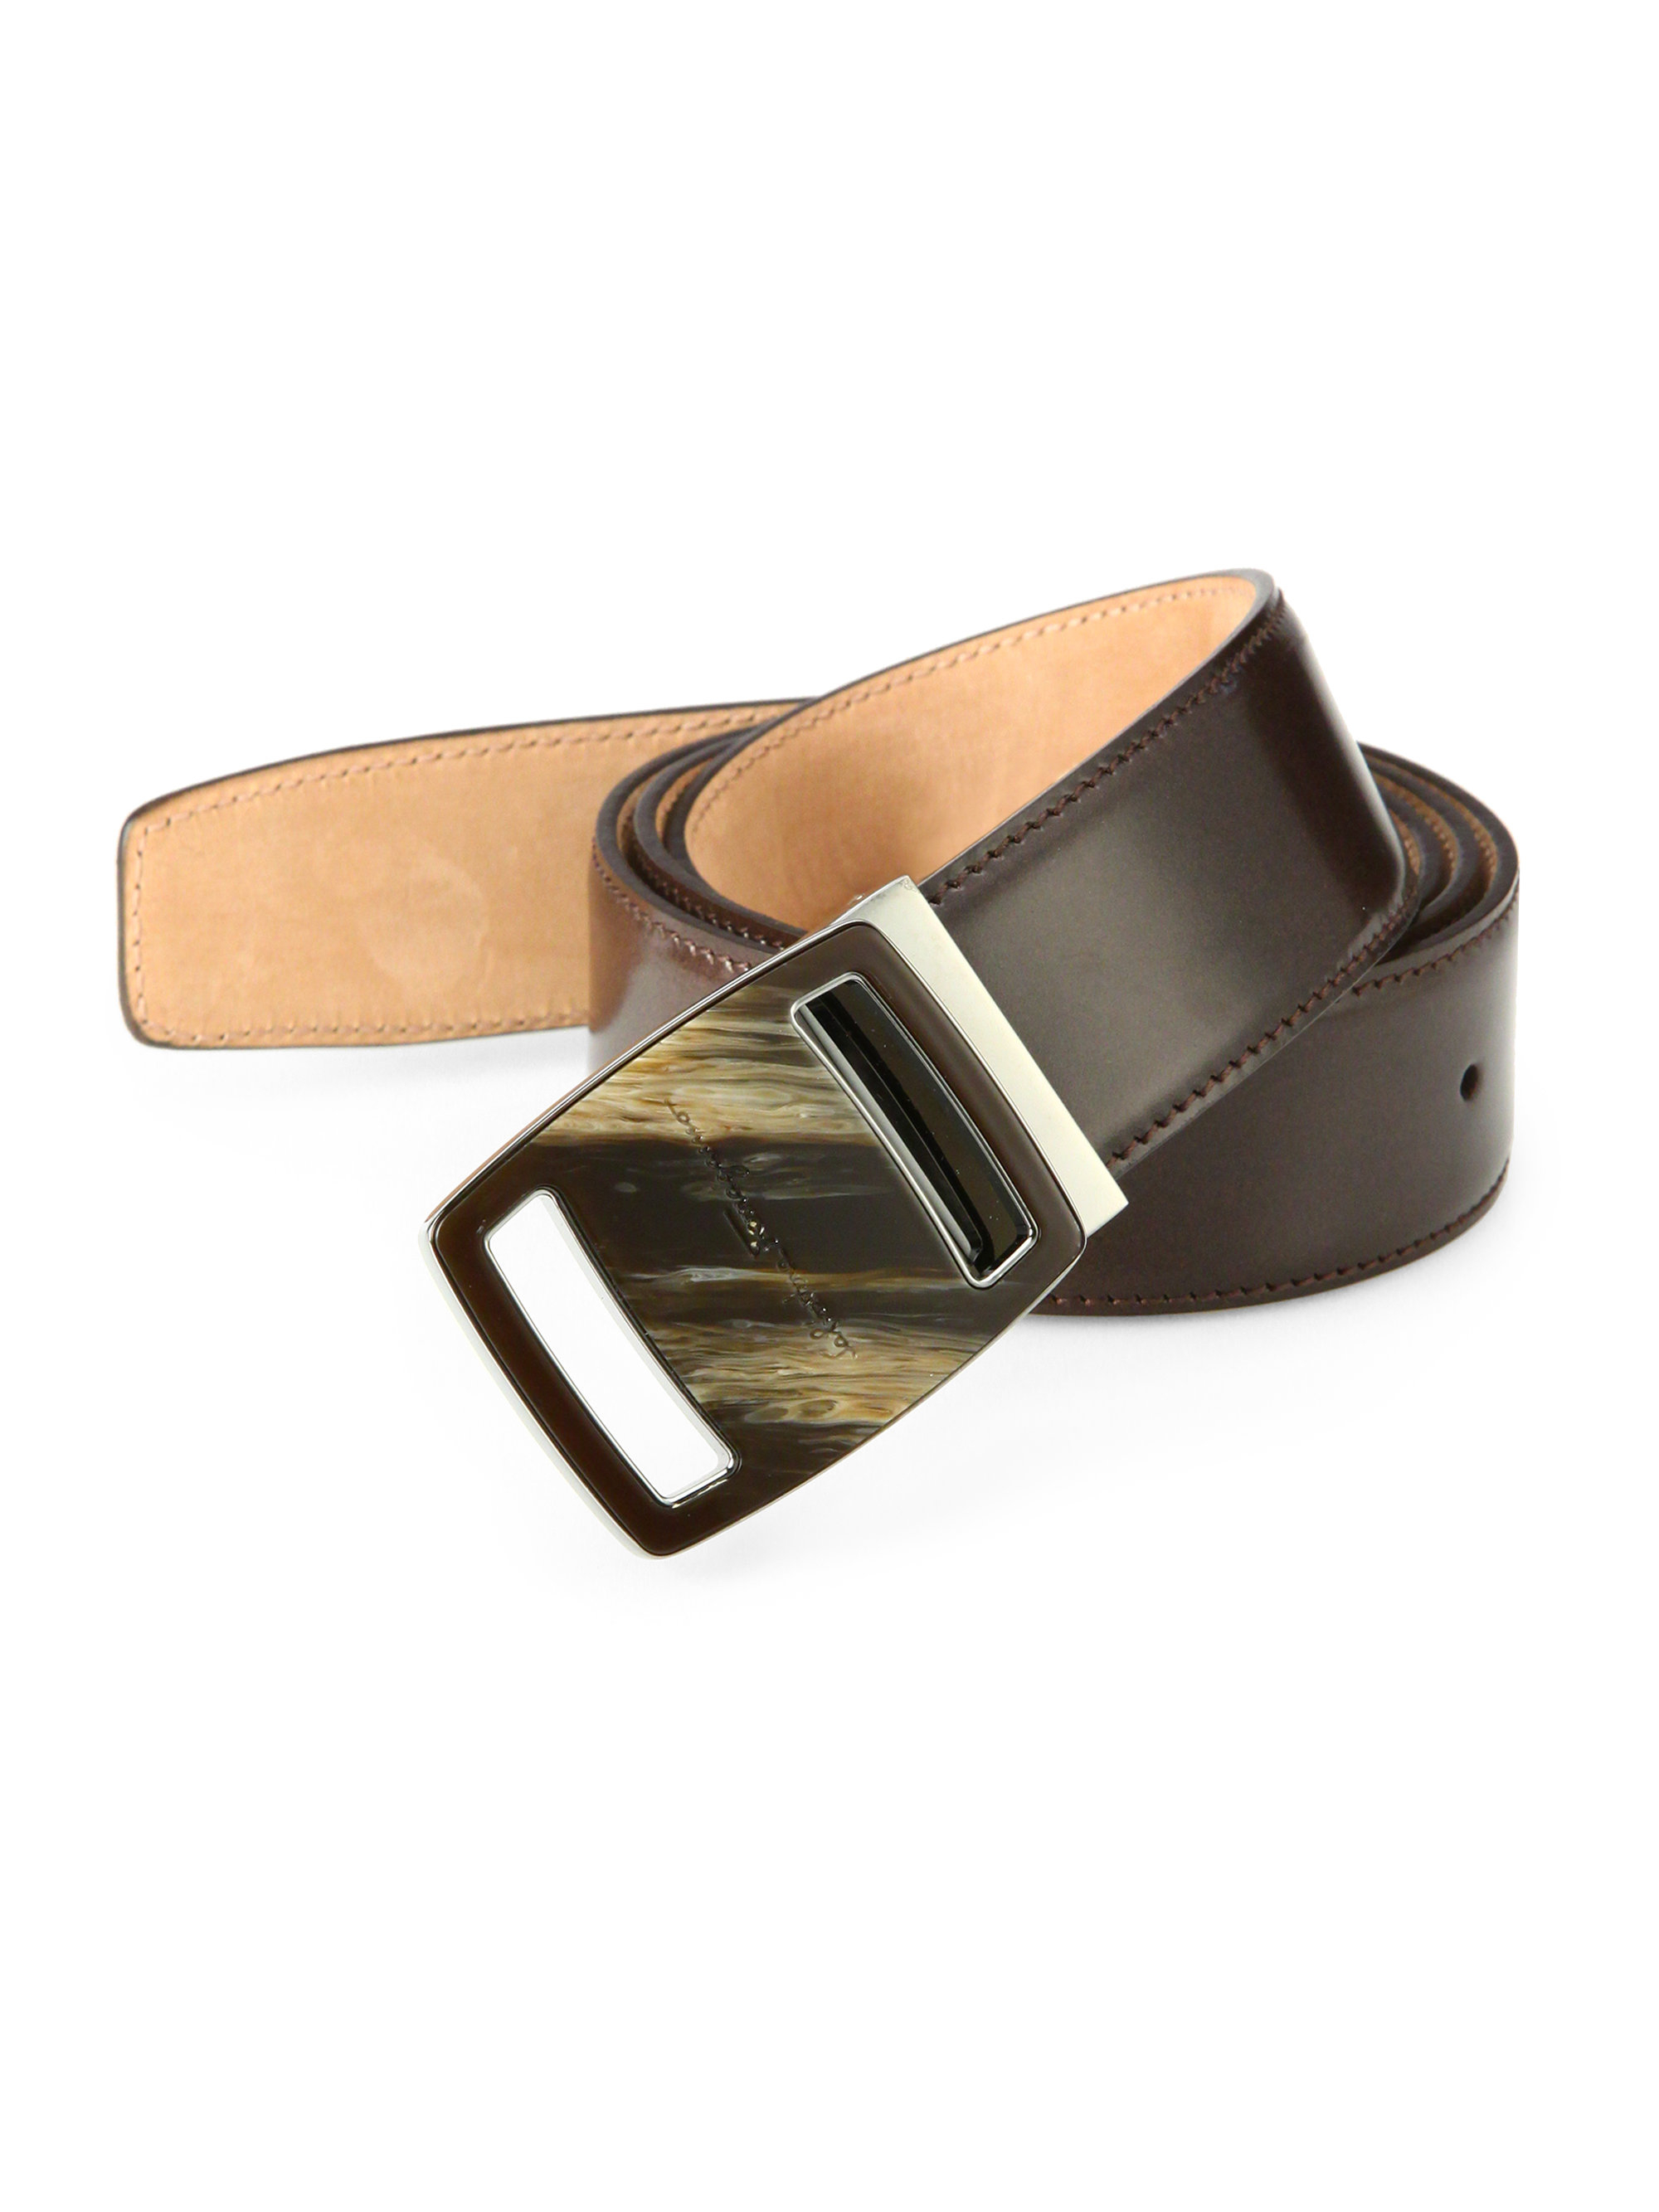 ferragamo sardegna buckle belt in brown for